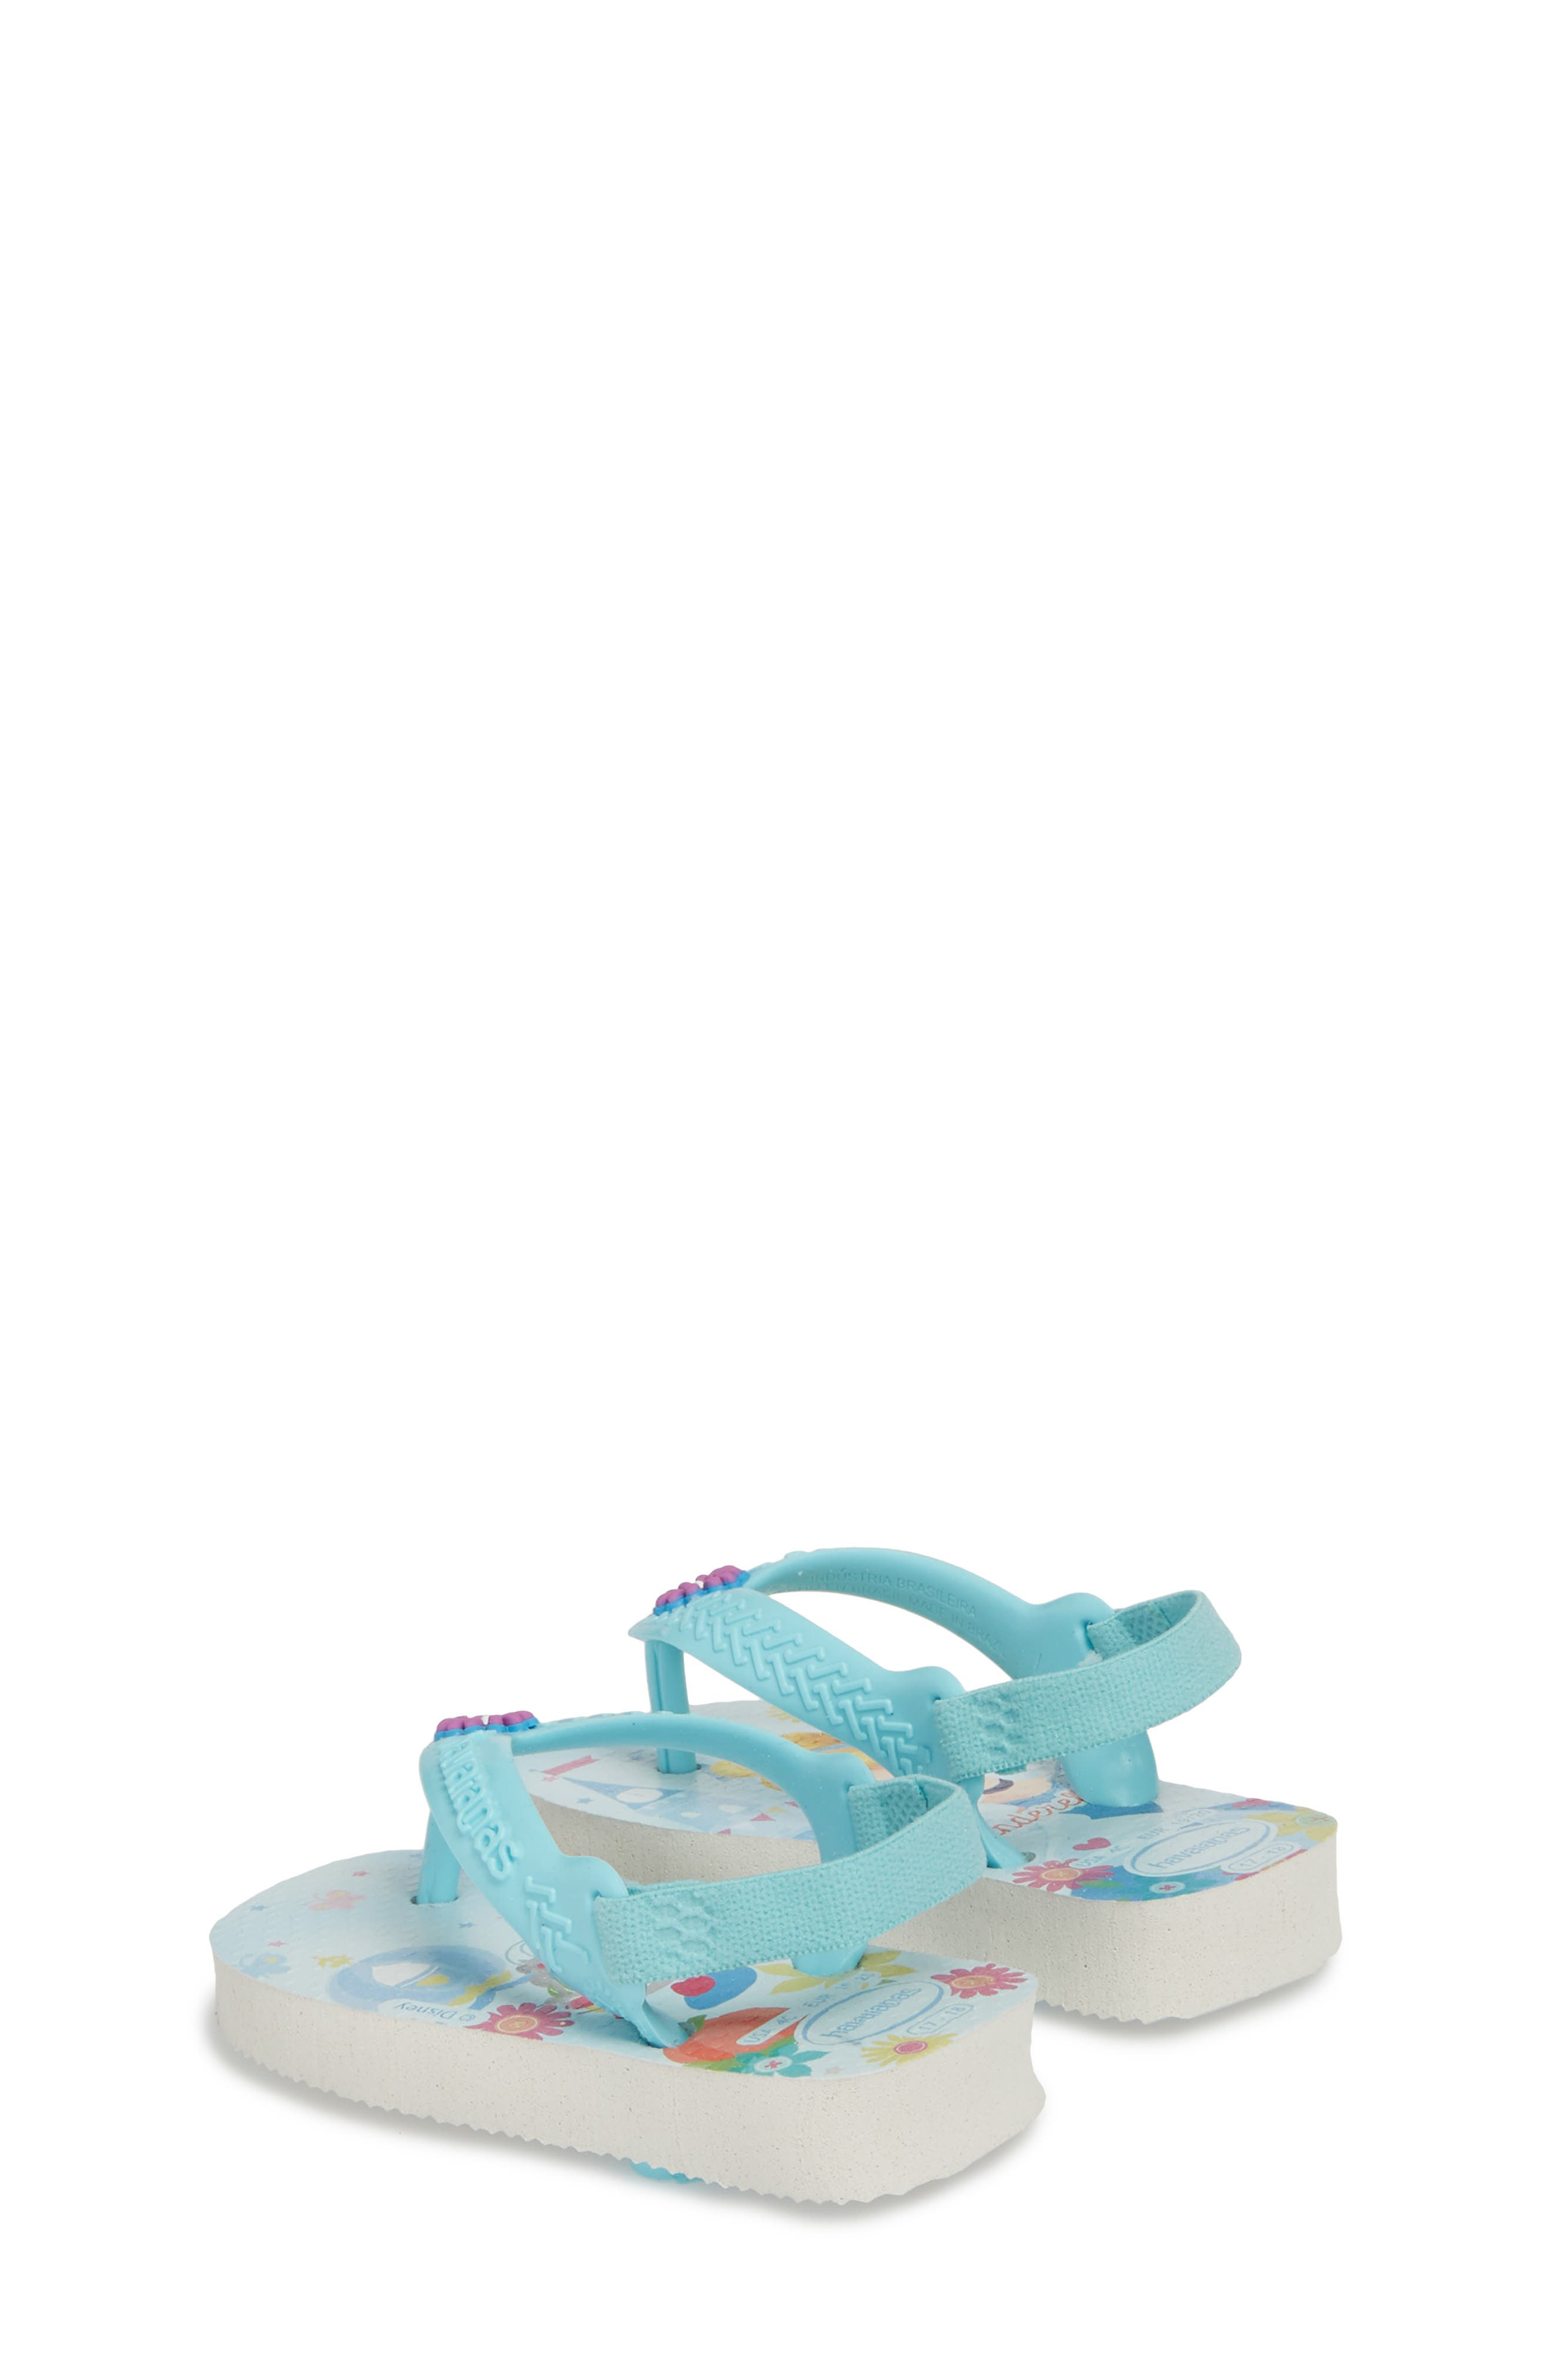 Baby Disney<sup>®</sup> Princess Flip Flop,                             Alternate thumbnail 2, color,                             White/ Ice Blue